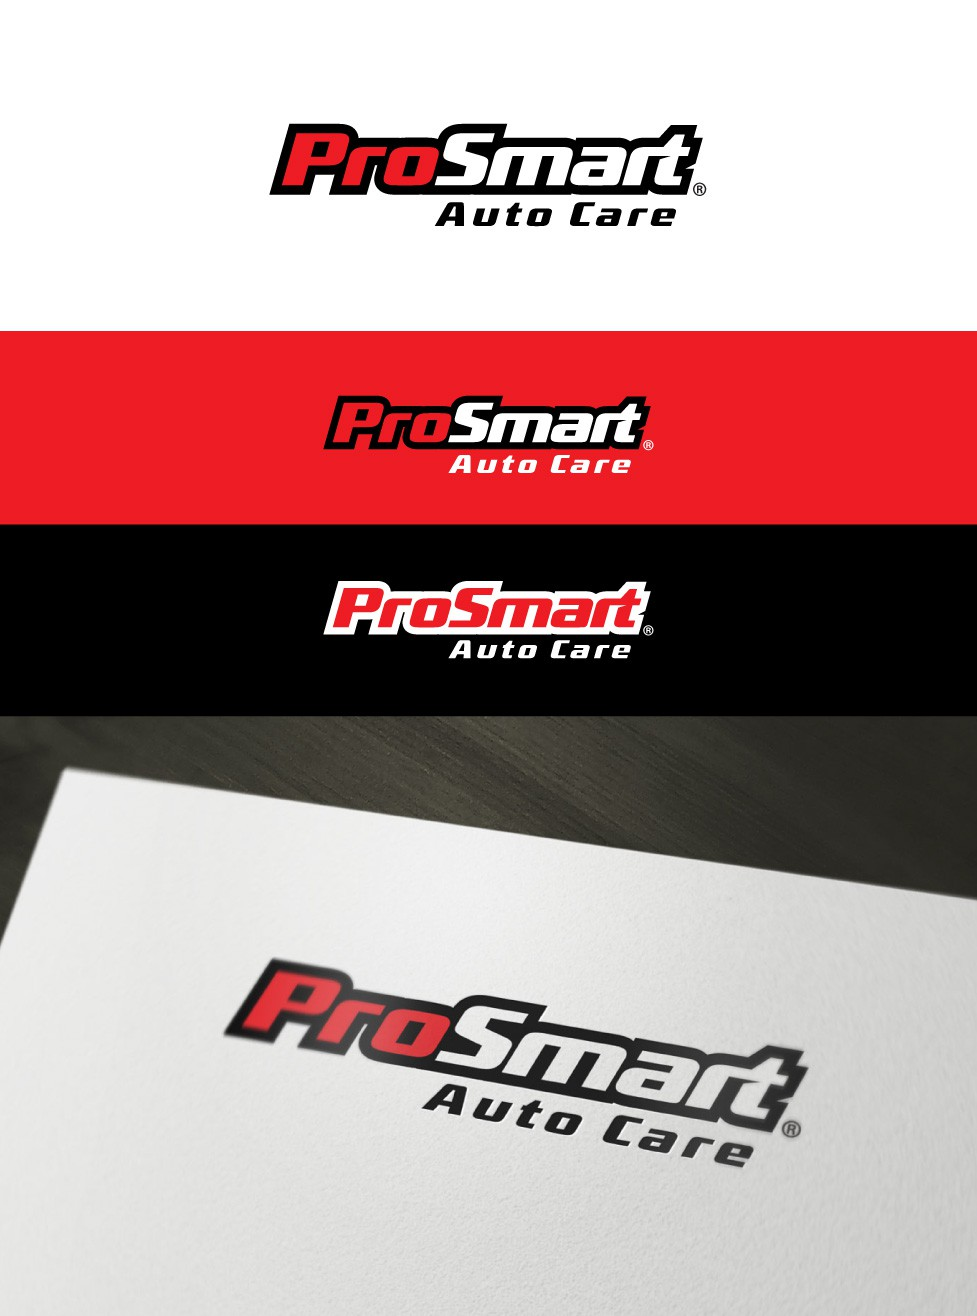 Create the next logo for ProSmart Auto Care